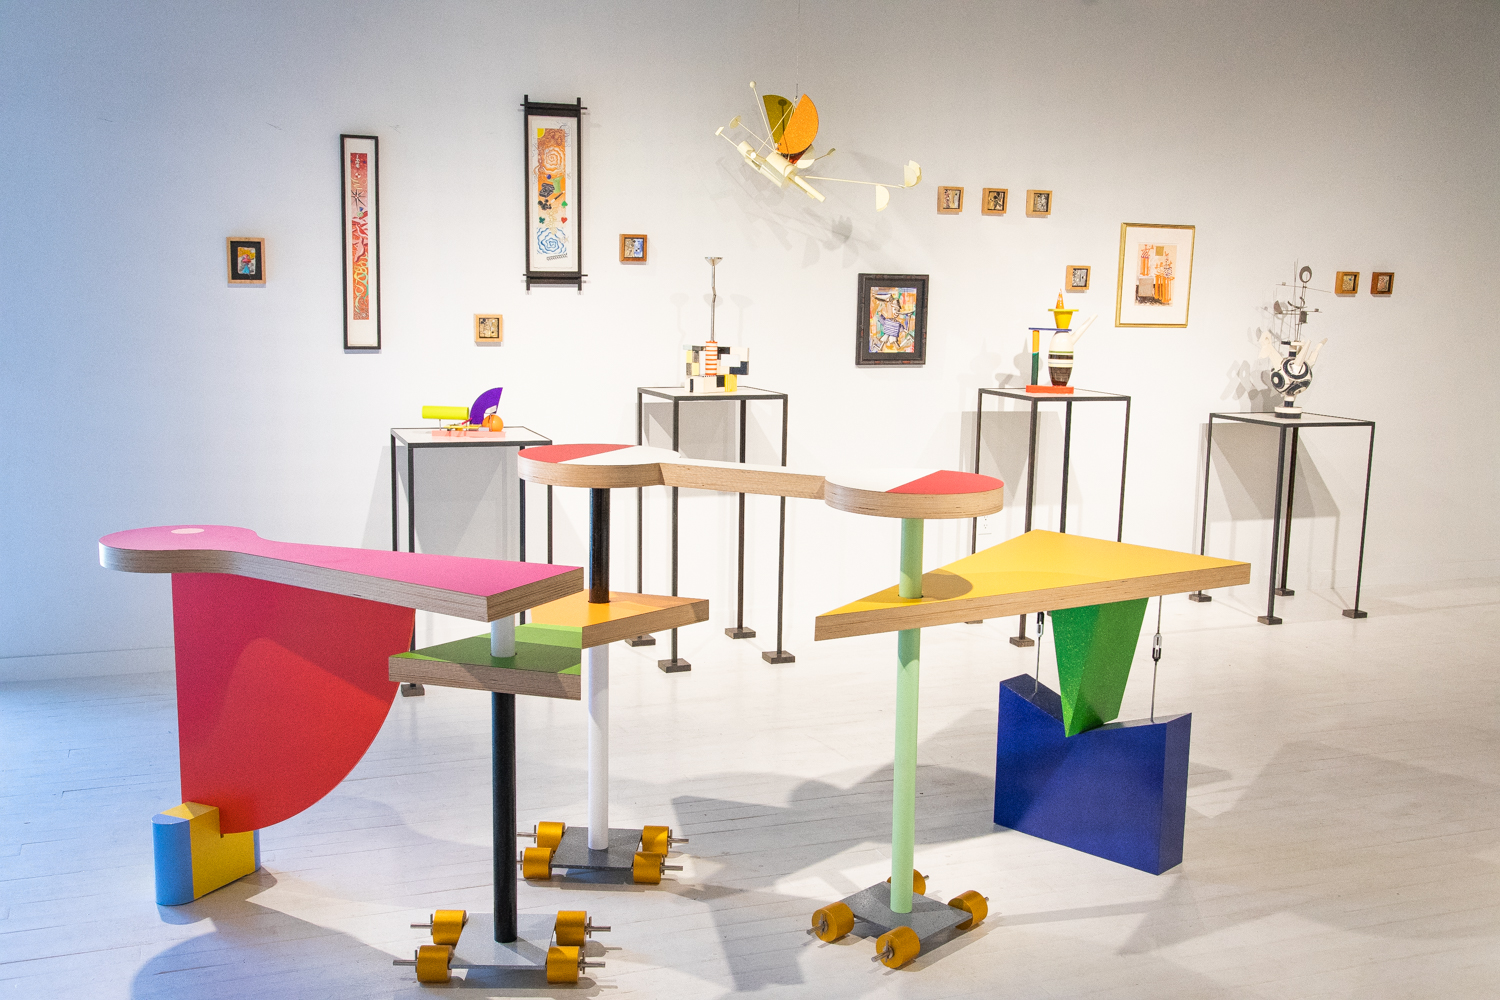 installation view of peter shire show, with modern geometric furniture and art pieces